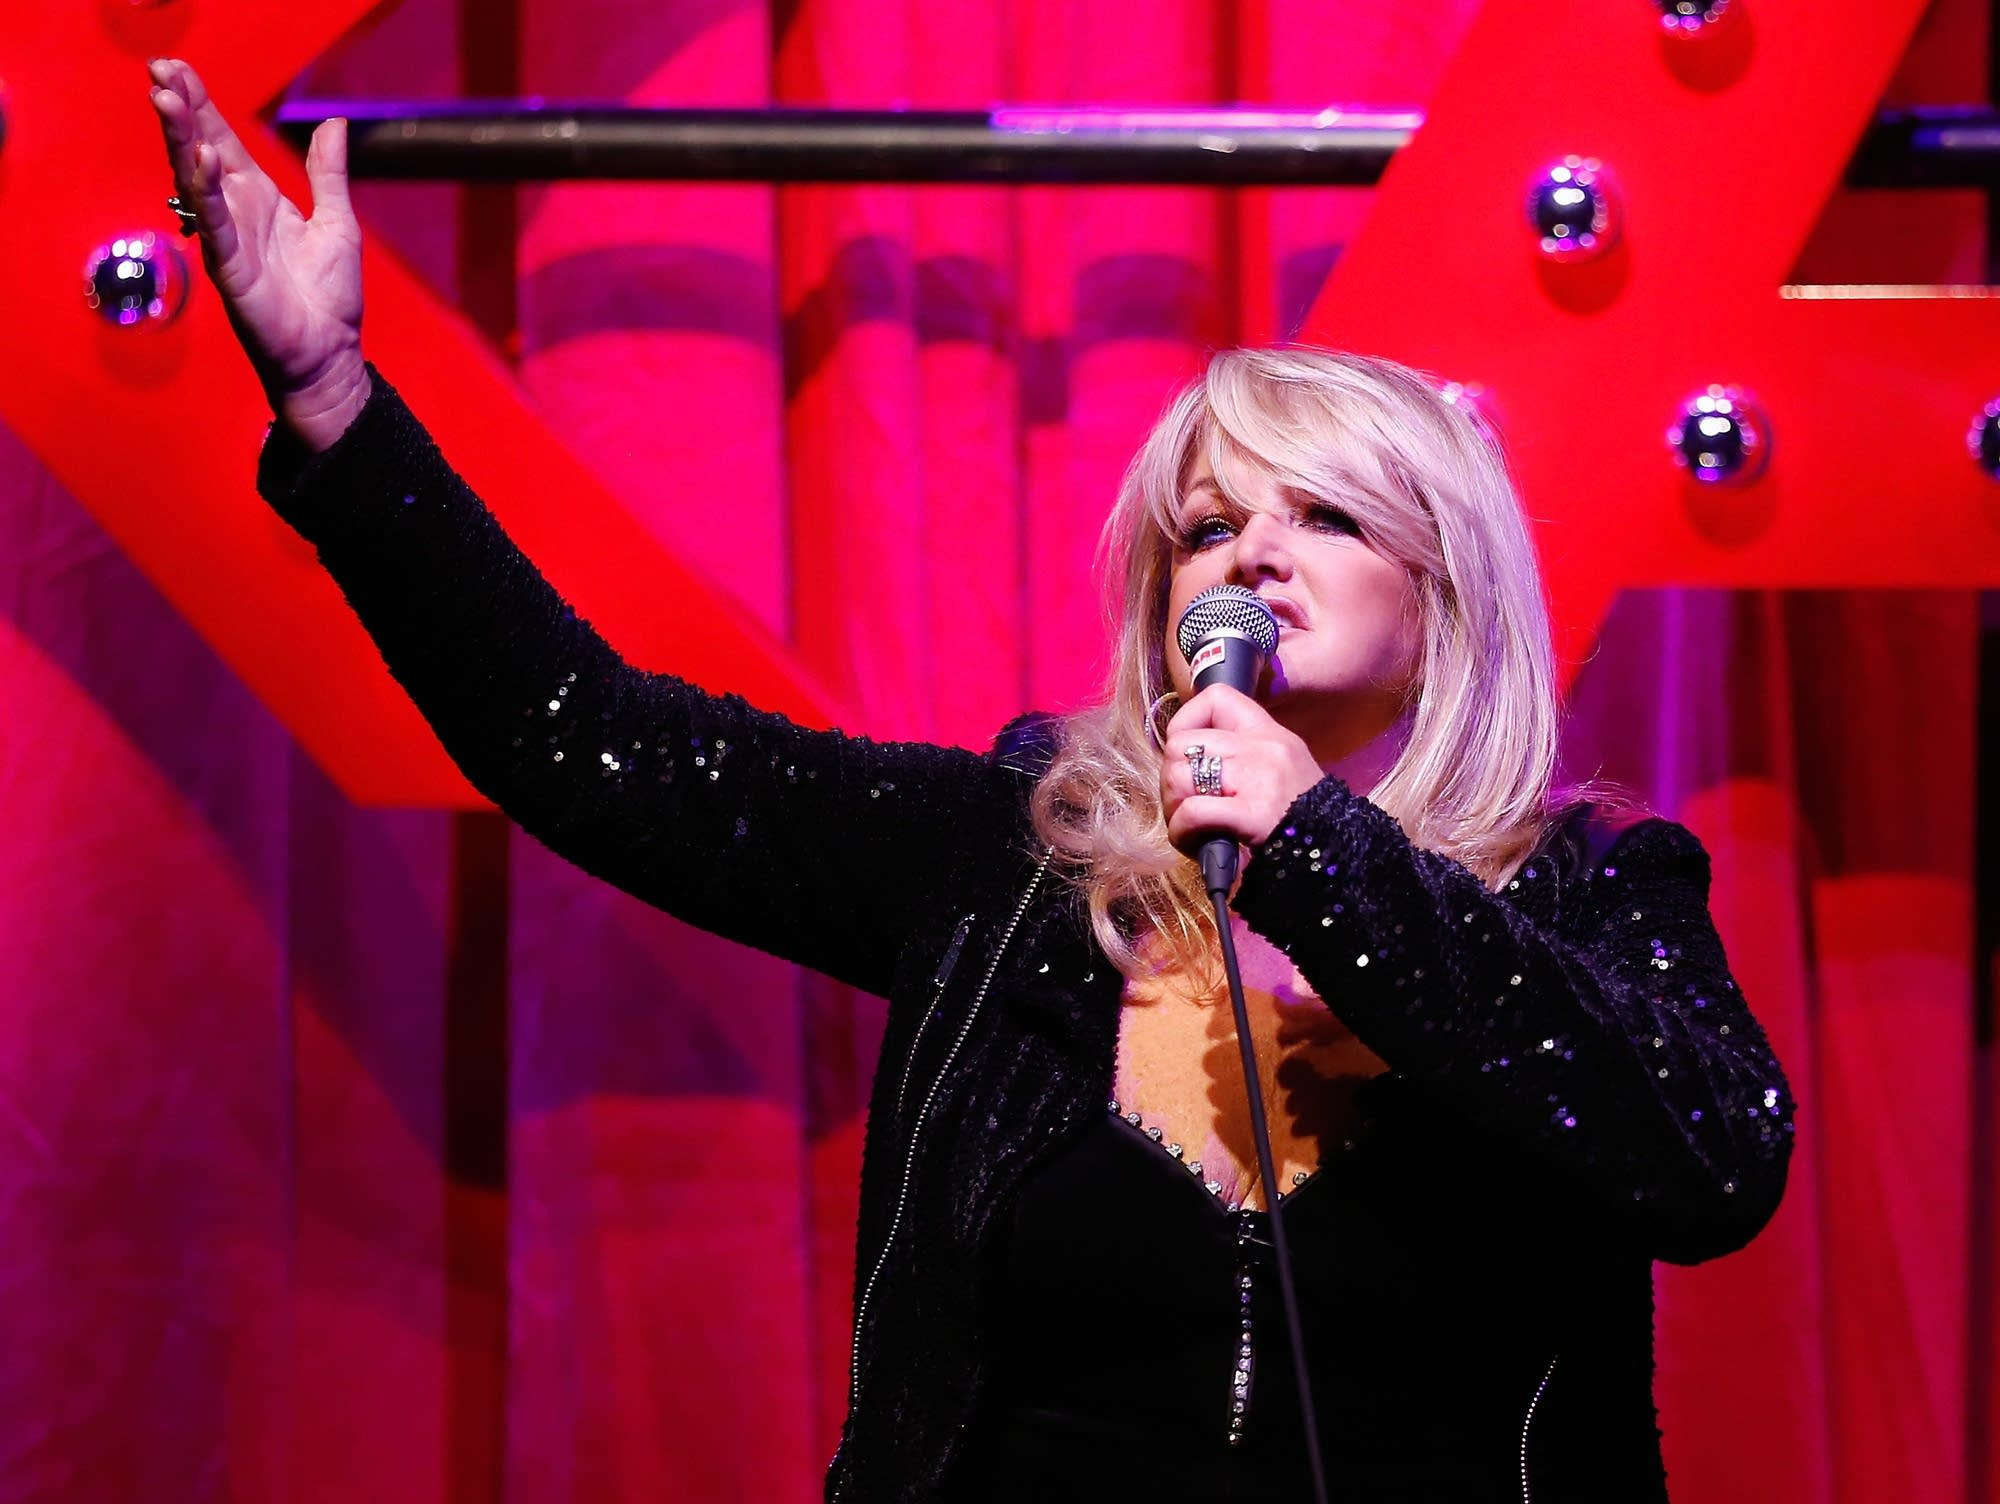 Bonnie Tyler performs in Germany in 2014.